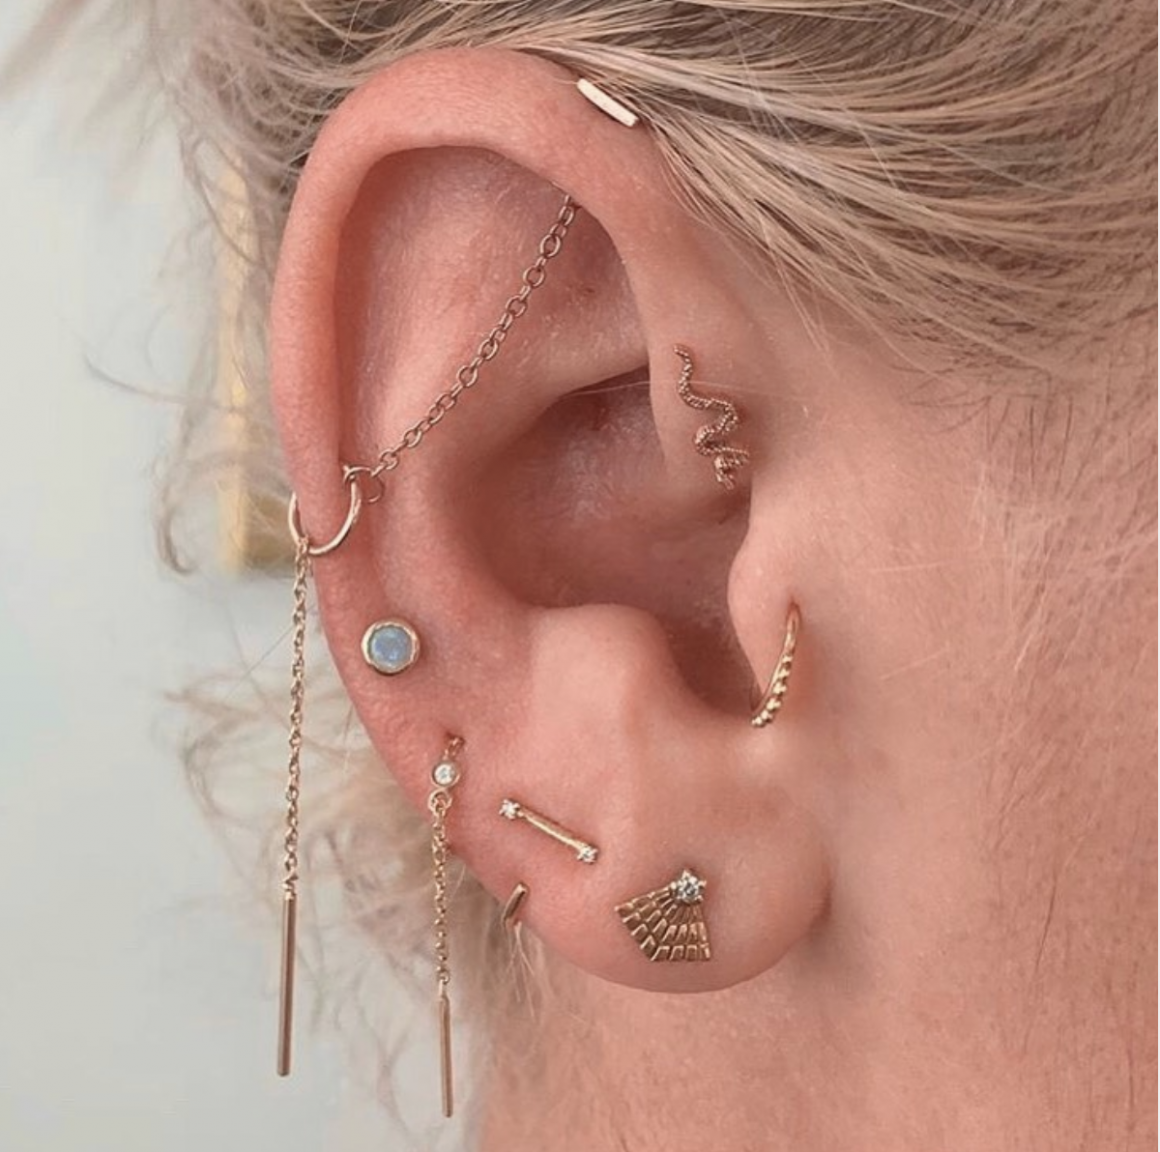 ear piercing trends 2020